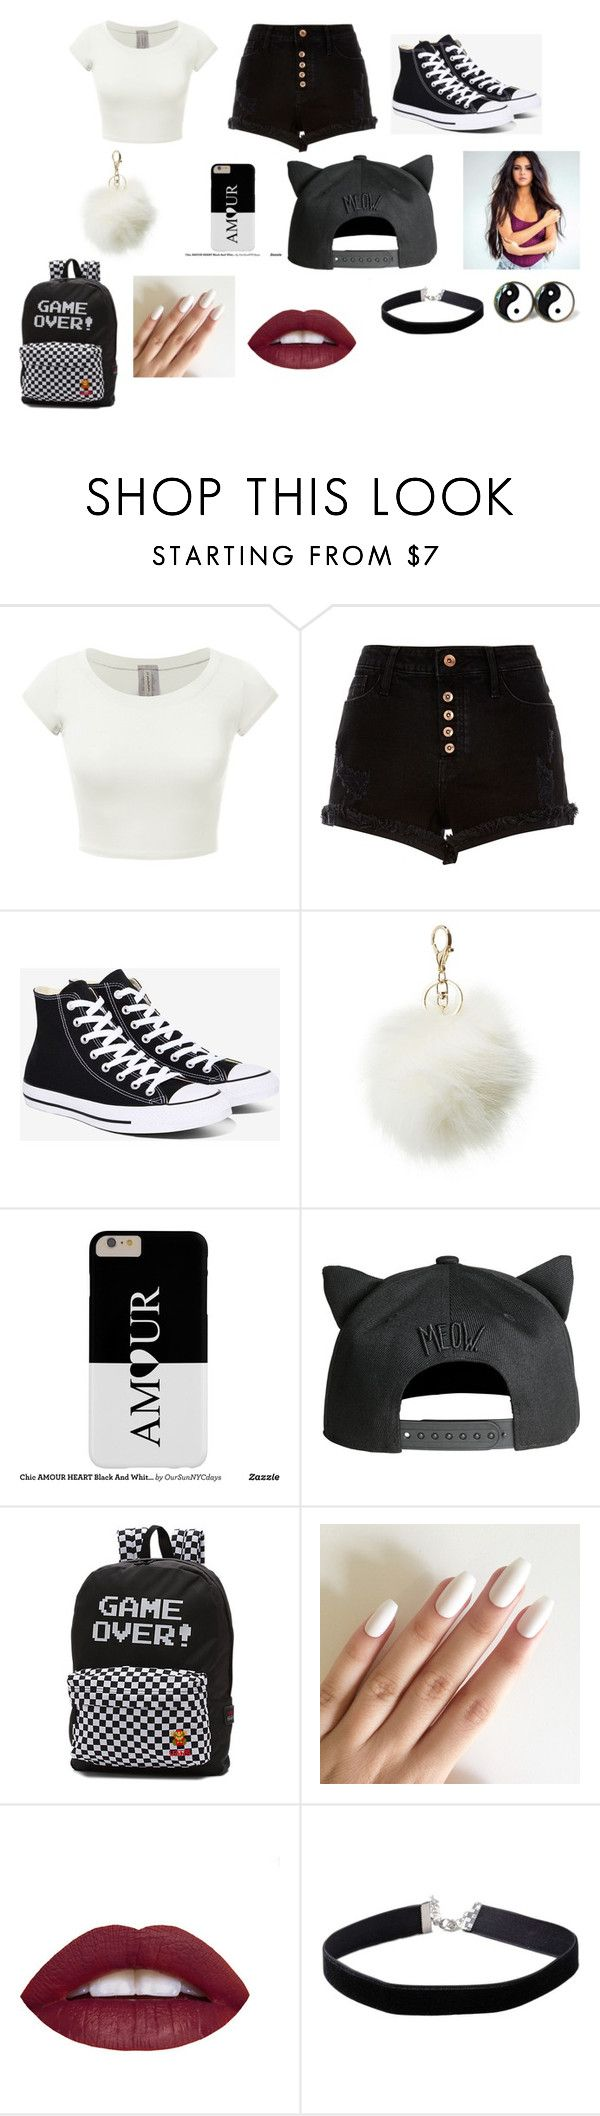 """""""Yin & Yang"""" by mindless2misfit ❤ liked on Polyvore featuring River Island, Converse, Charlotte Russe, Vans and Miss Selfridge"""